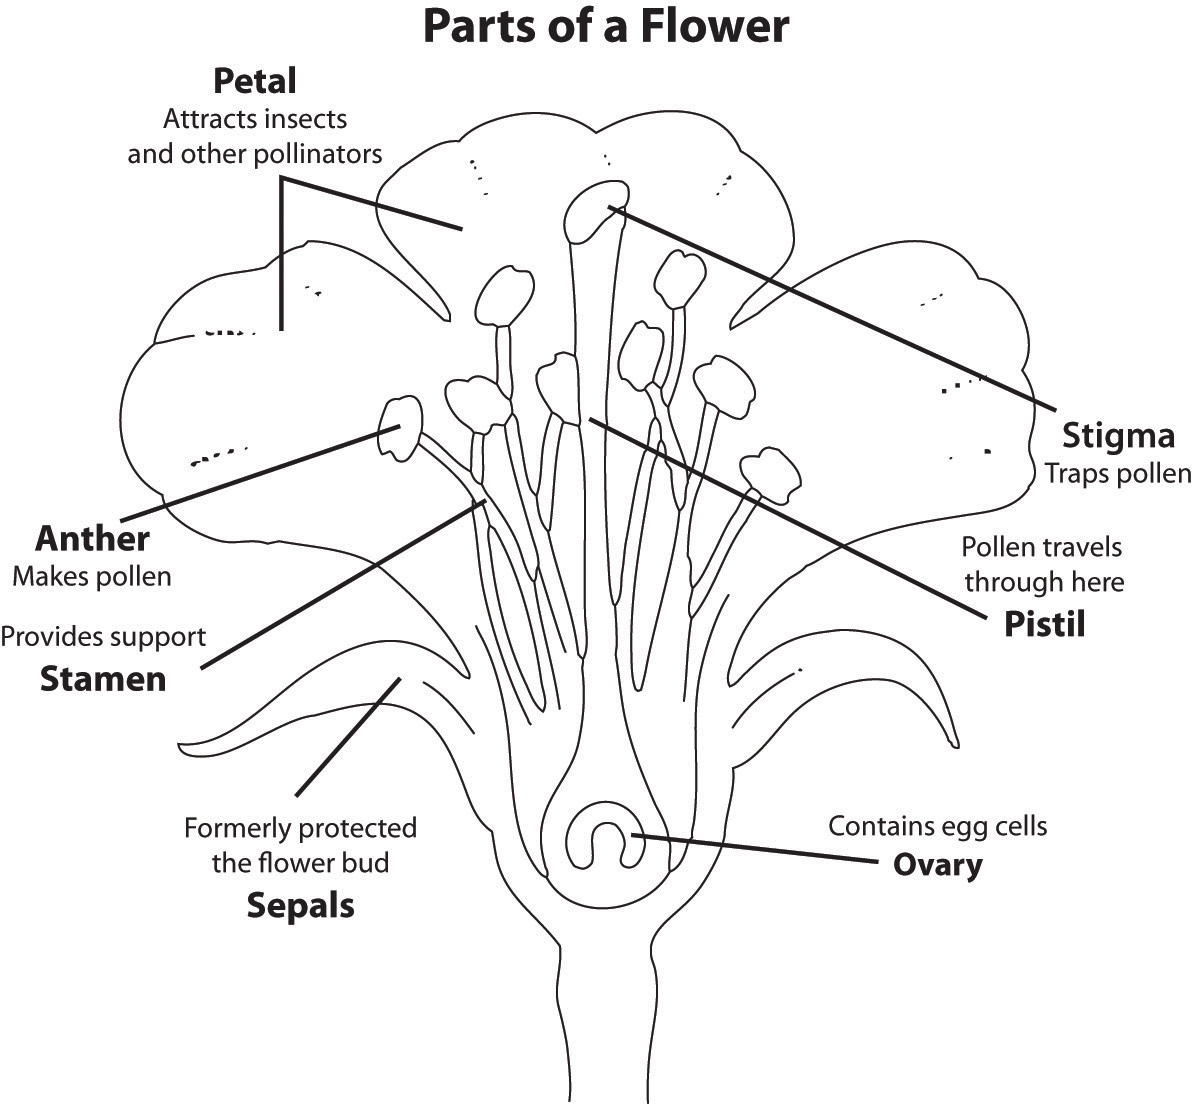 The Parts of a Flower: Petal (attracts insects and other pollinators), Stigma (traps pollen), Pistil (pollen travels through here), Ovary (contains egg cells), Sepals (formerly protected the flower bud), Stamen (provides support), anther (makes pollen)